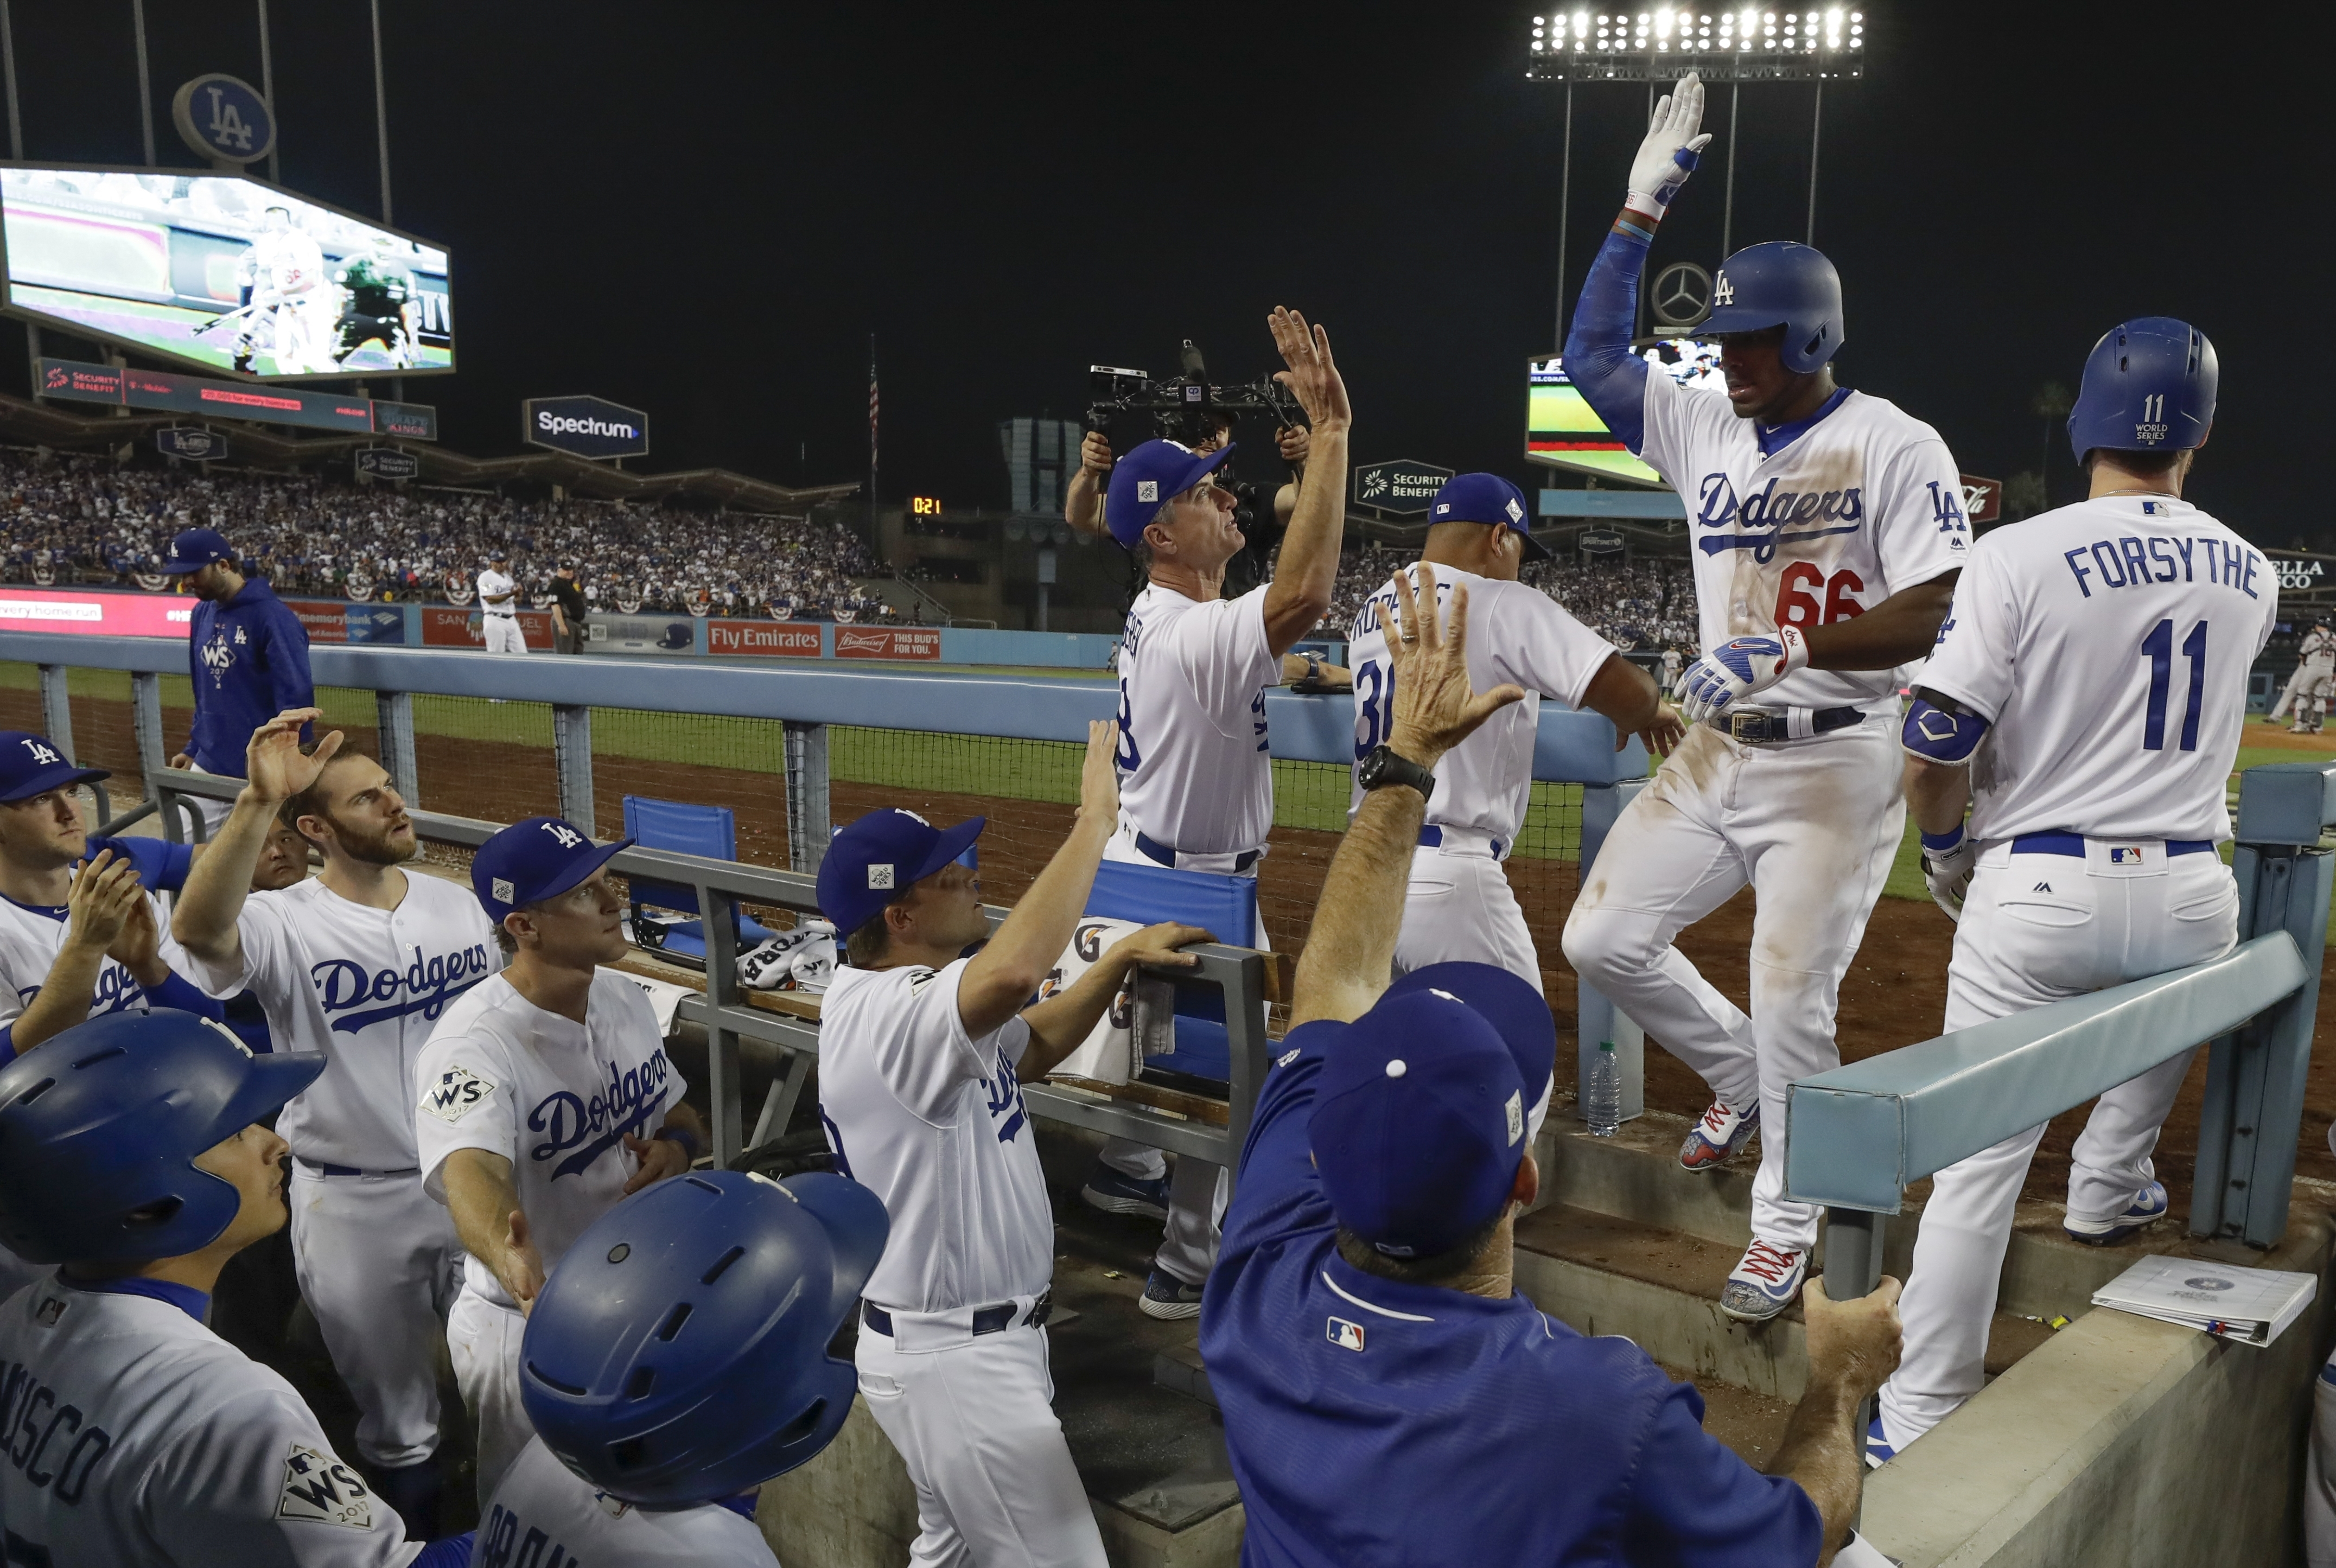 <div class='meta'><div class='origin-logo' data-origin='AP'></div><span class='caption-text' data-credit='(AP Photo/Matt Slocum)'>Los Angeles Dodgers' Yasiel Puig is congratulated after hitting a home run during the 10th inning of Game 2 of baseball's World Series against the Houston Astros.</span></div>